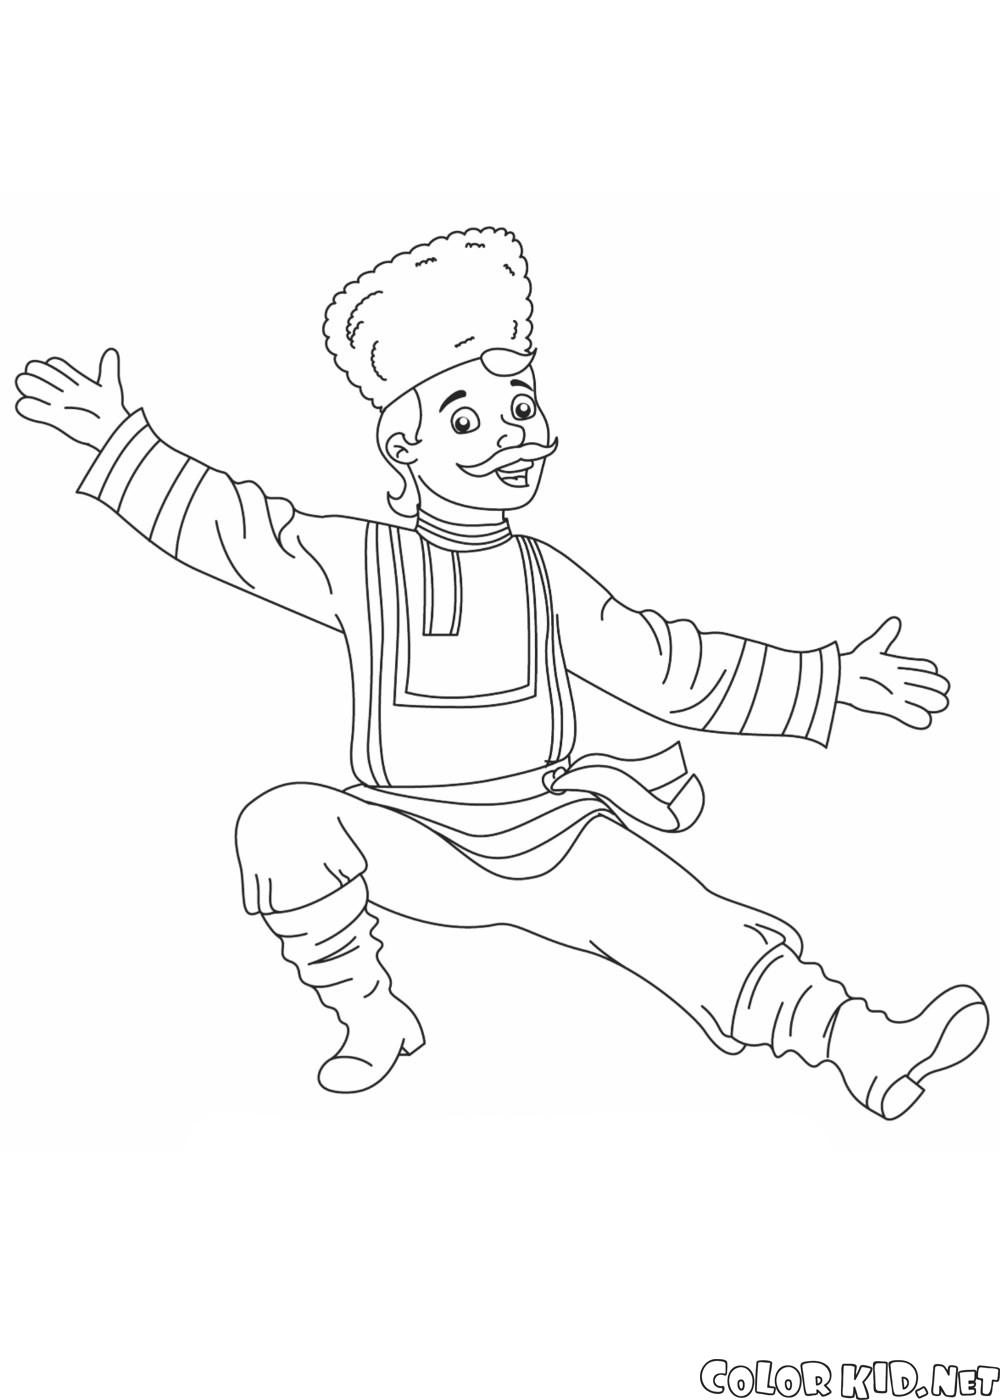 Coloring Page Russian Dancer